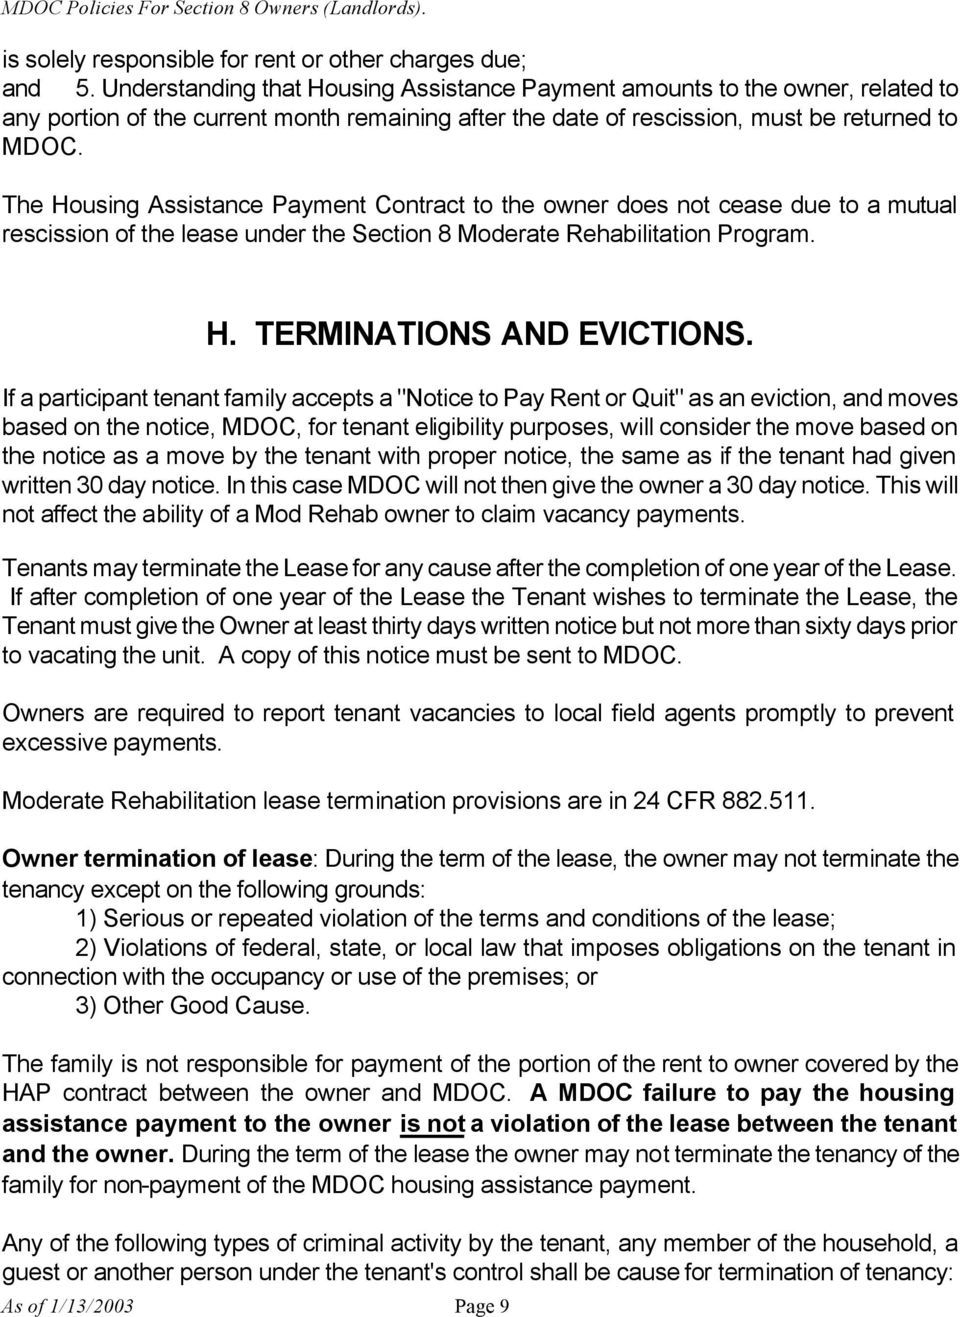 The Housing Assistance Payment Contract to the owner does not cease due to a mutual rescission of the lease under the Section 8 Moderate Rehabilitation Program. H. TERMINATIONS AND EVICTIONS.